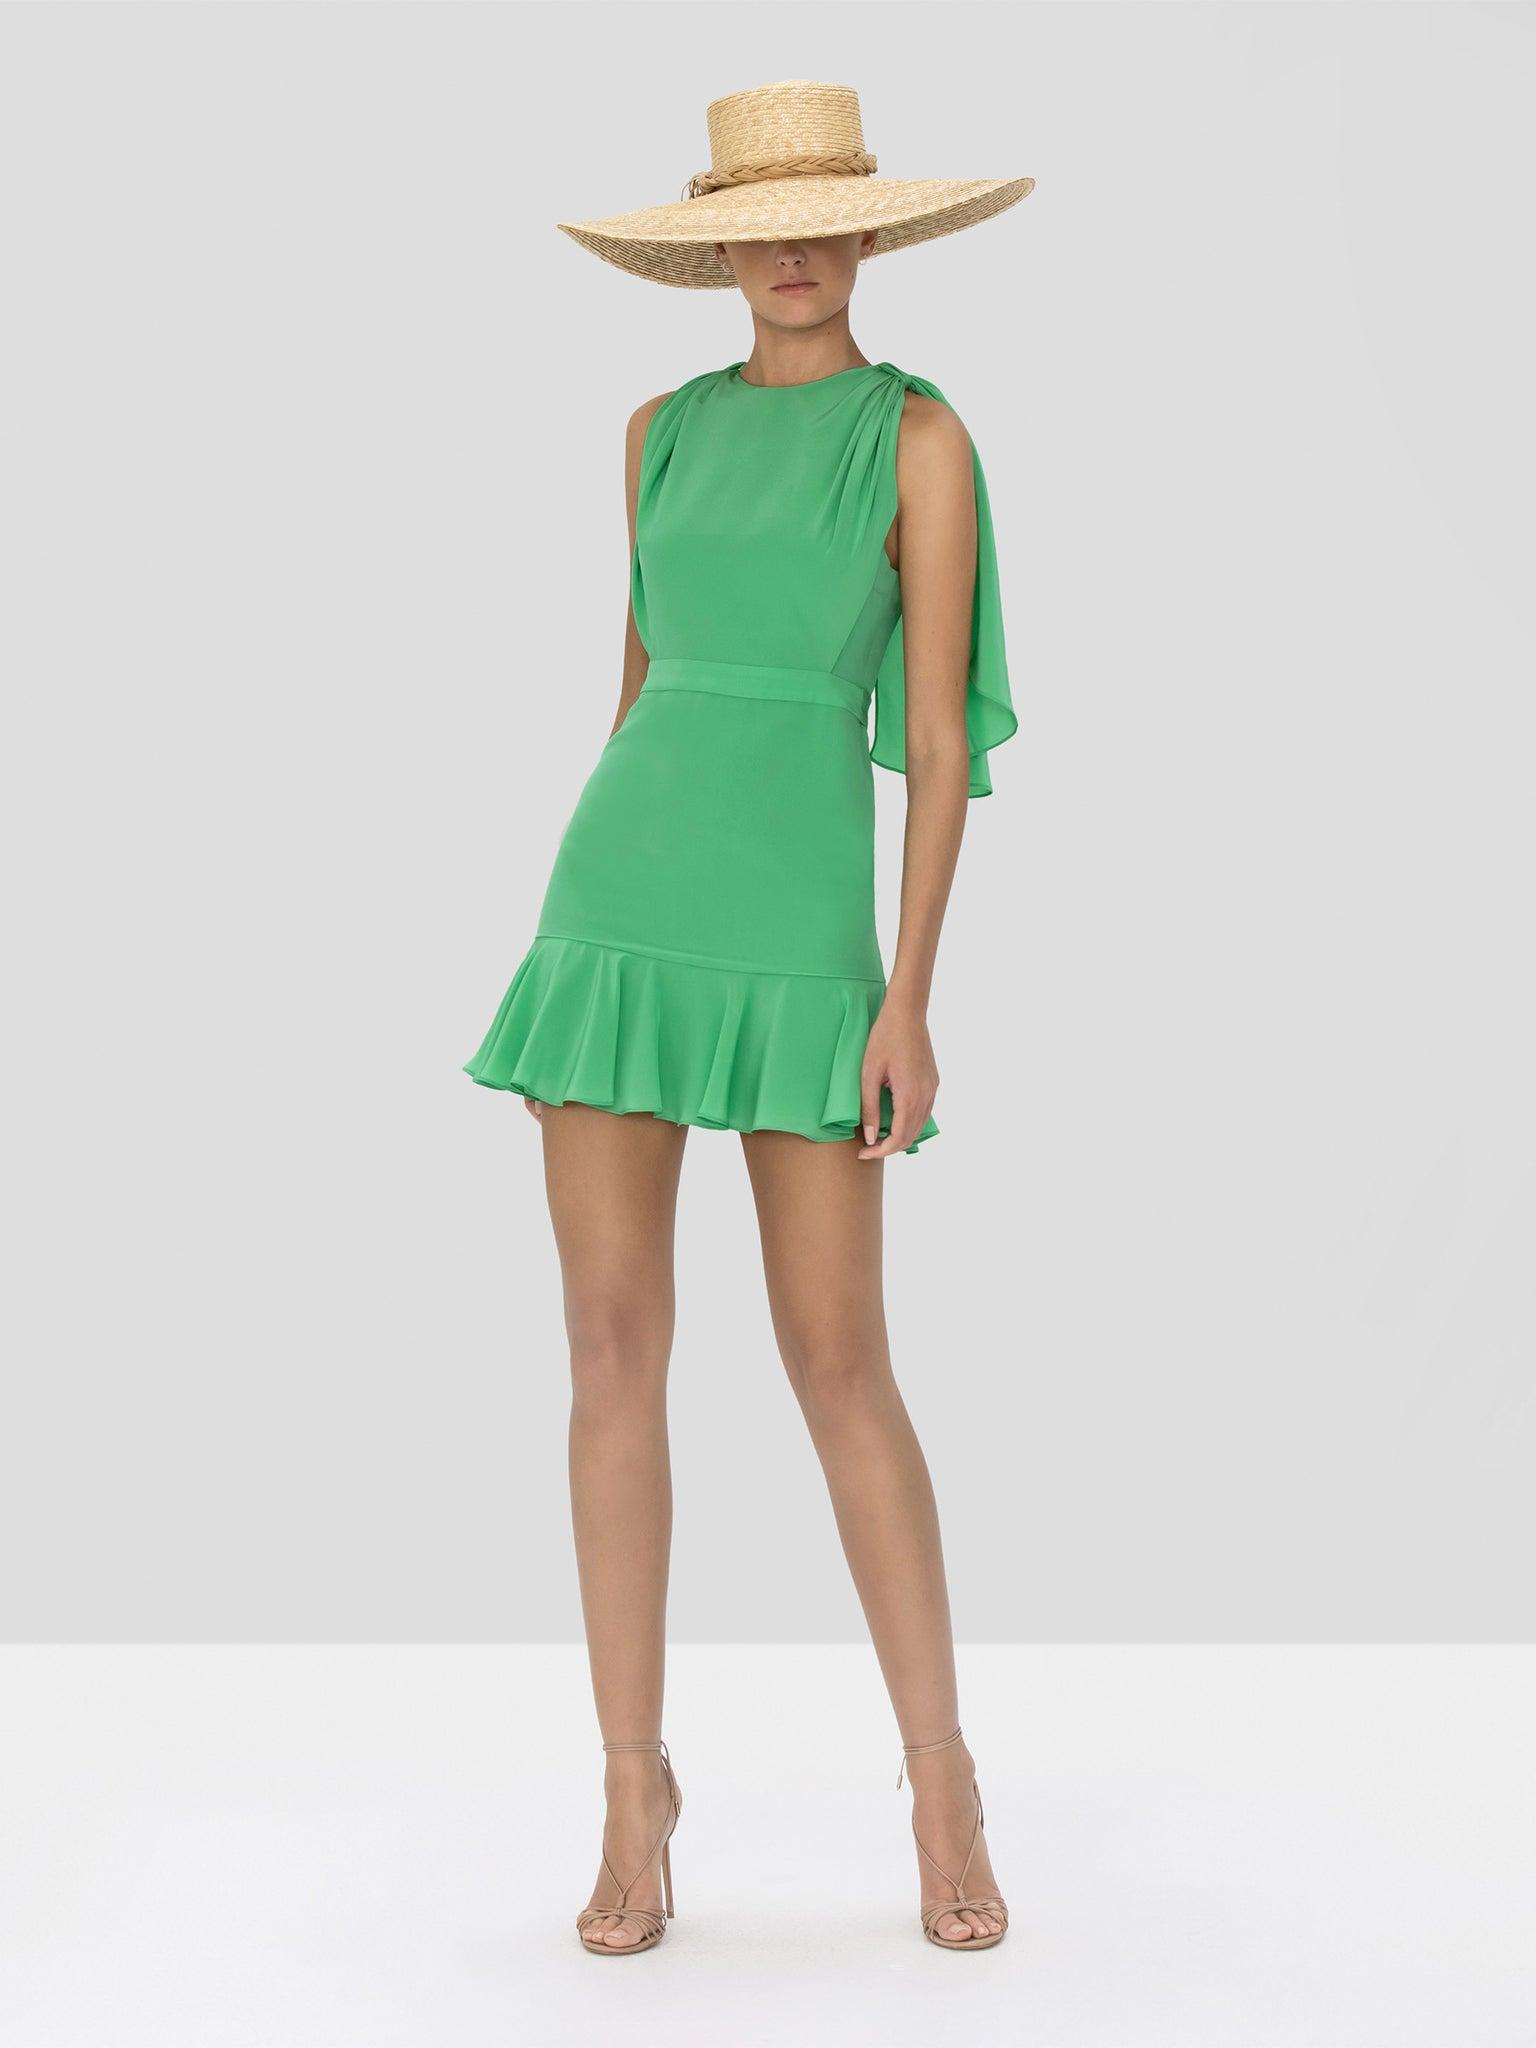 Alexis Tensia Dress in Kelly Green from Spring Summer 2020 Collection